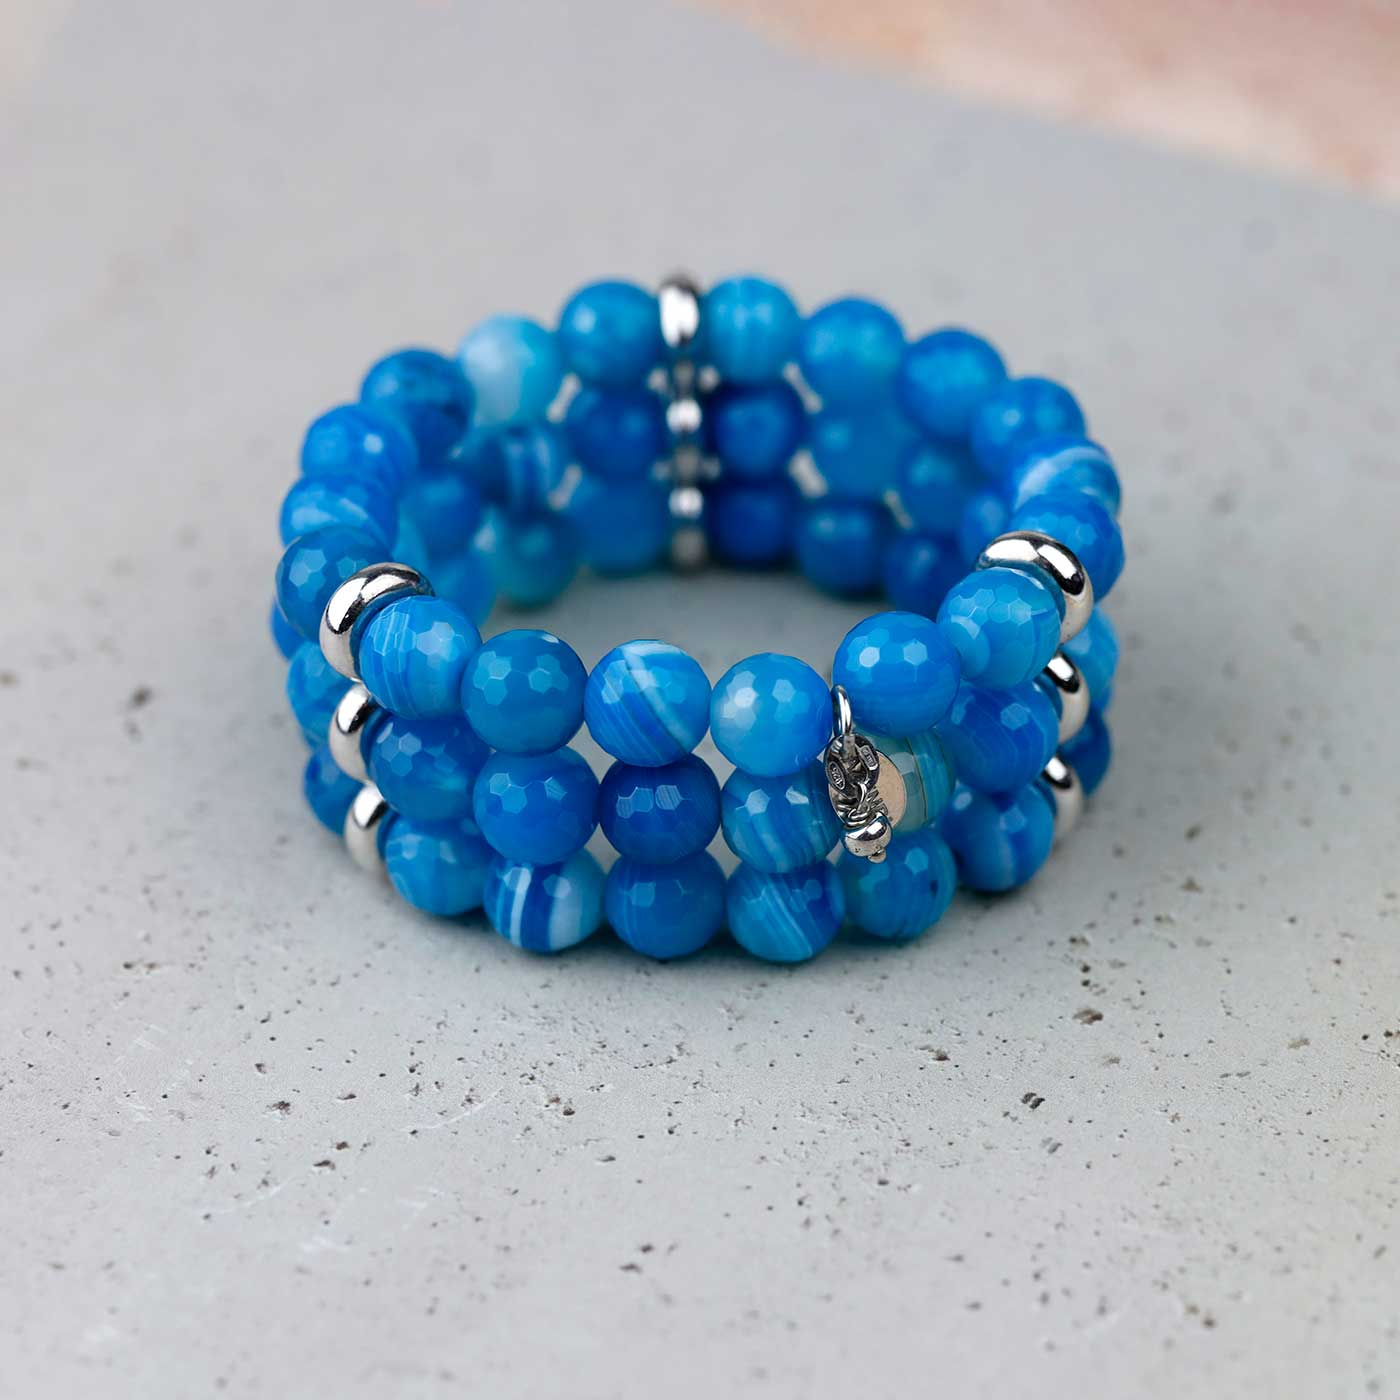 Triple Strand Blue Agate Stretch Bracelet